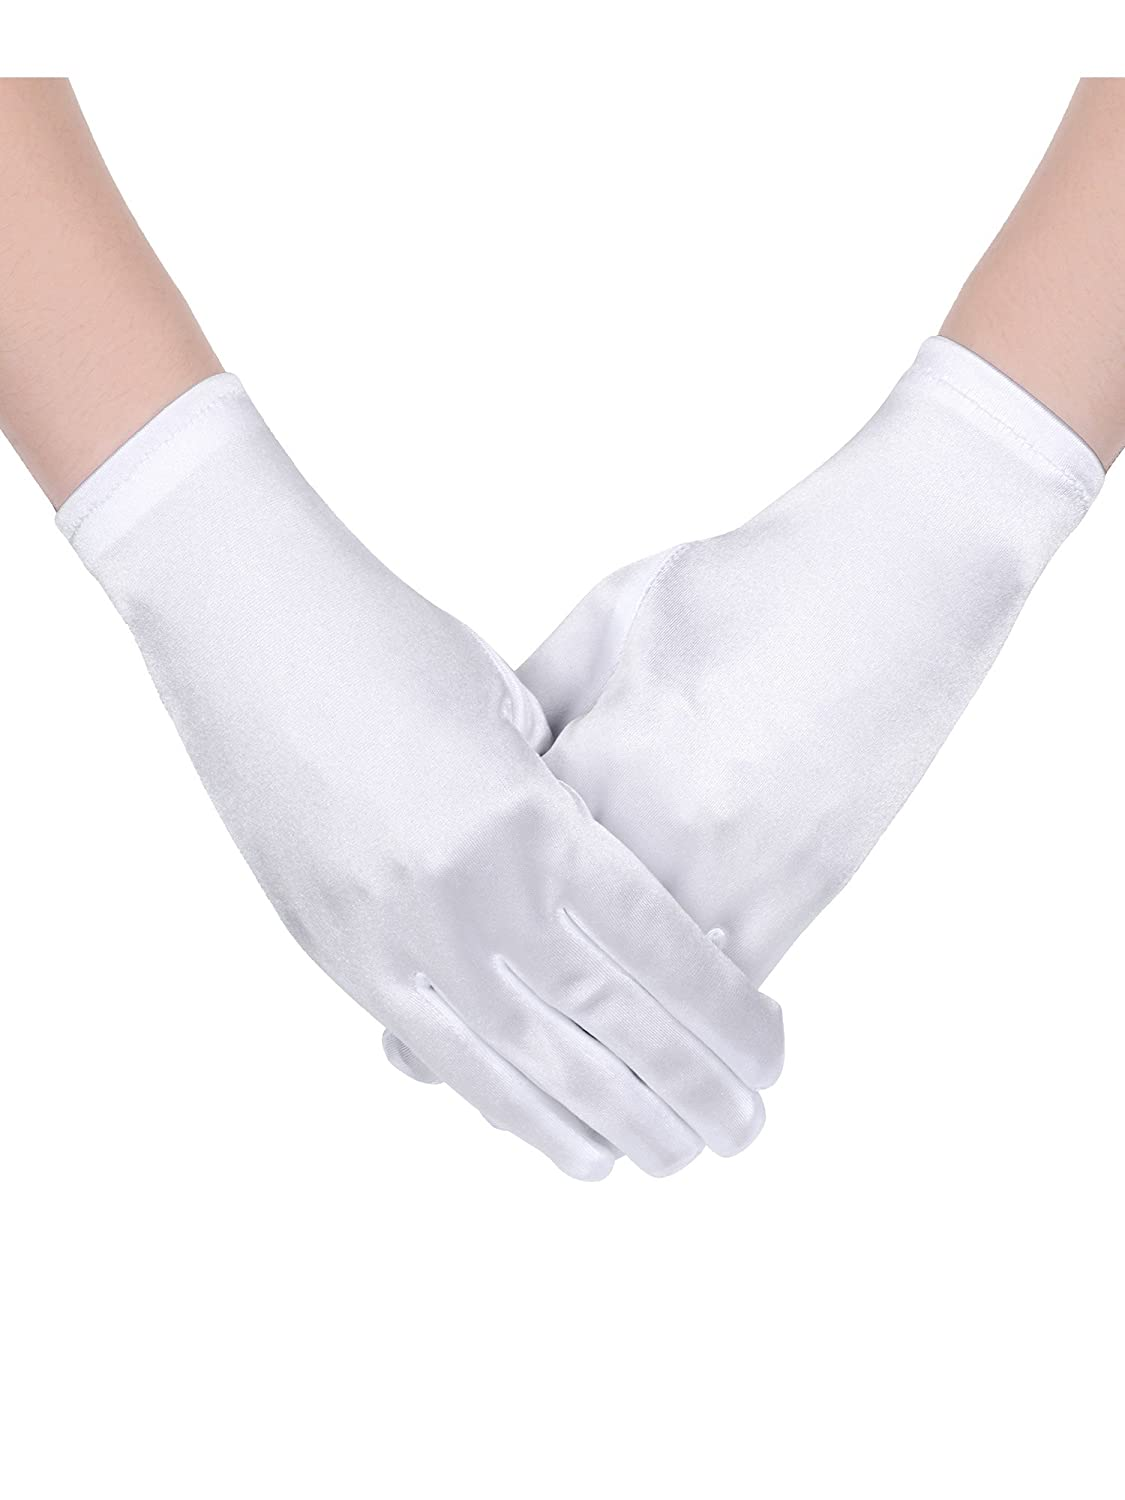 Victorian Gloves | Victorian Accessories Sumind Short Satin Gloves Wrist Length Gloves Womens Gown Gloves Opera Wedding Banquet Dress Glove for Party Dance $6.99 AT vintagedancer.com